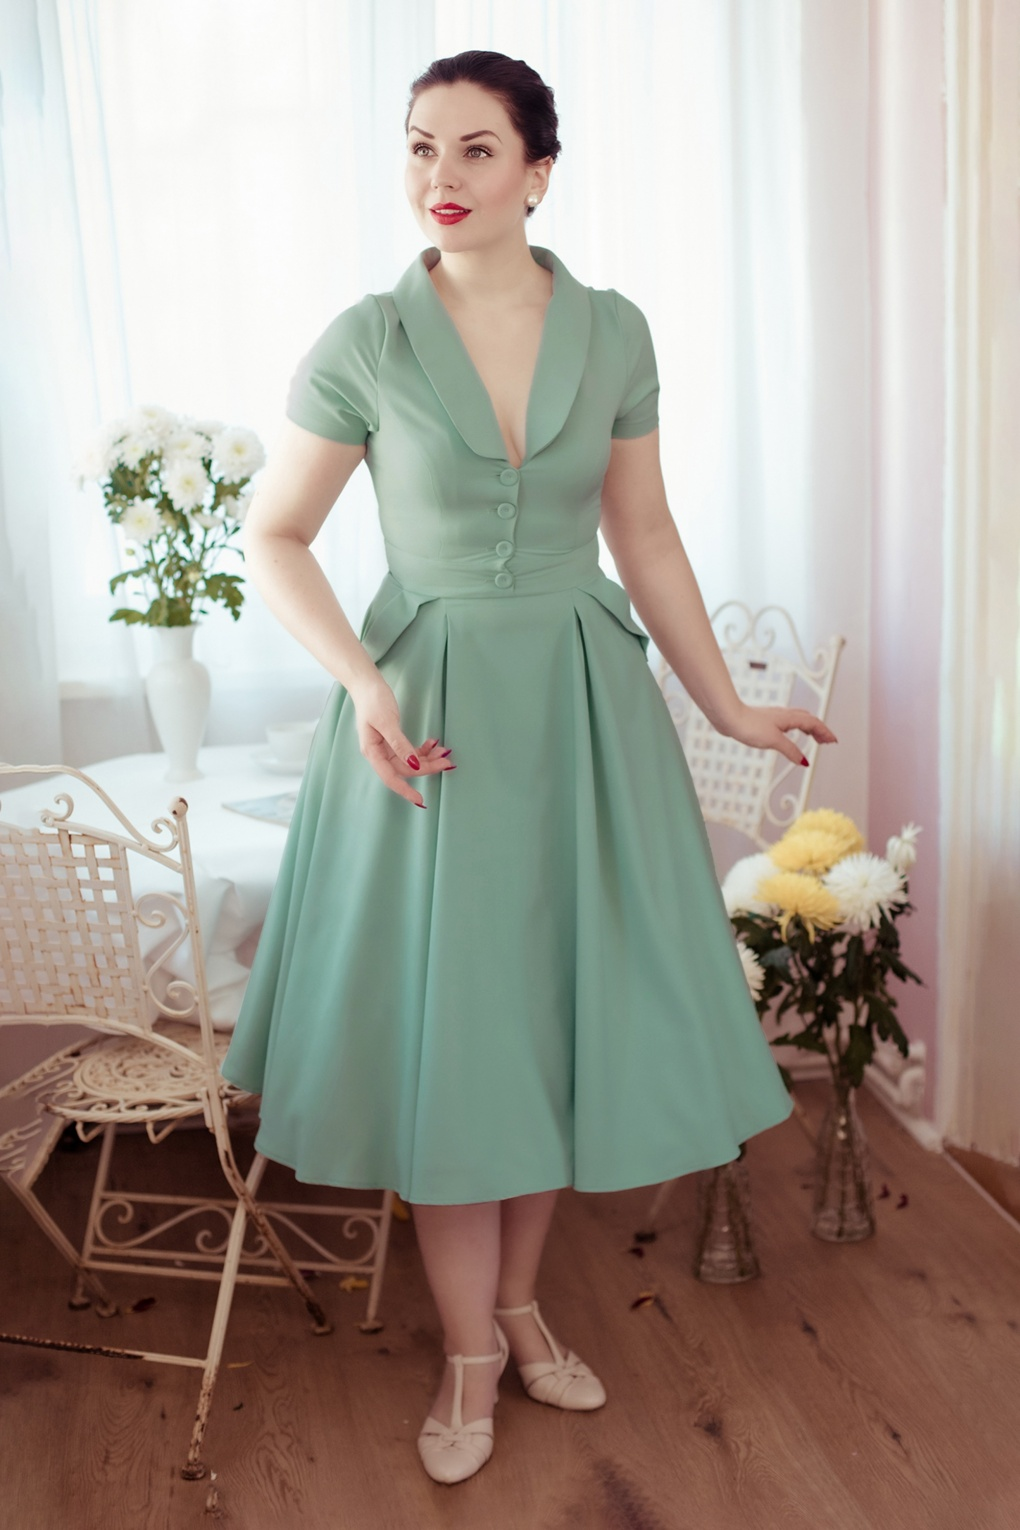 1950s Inspired Fashion: Recreate the Look 50s Matia Swing Dress in Minty £19.95 AT vintagedancer.com